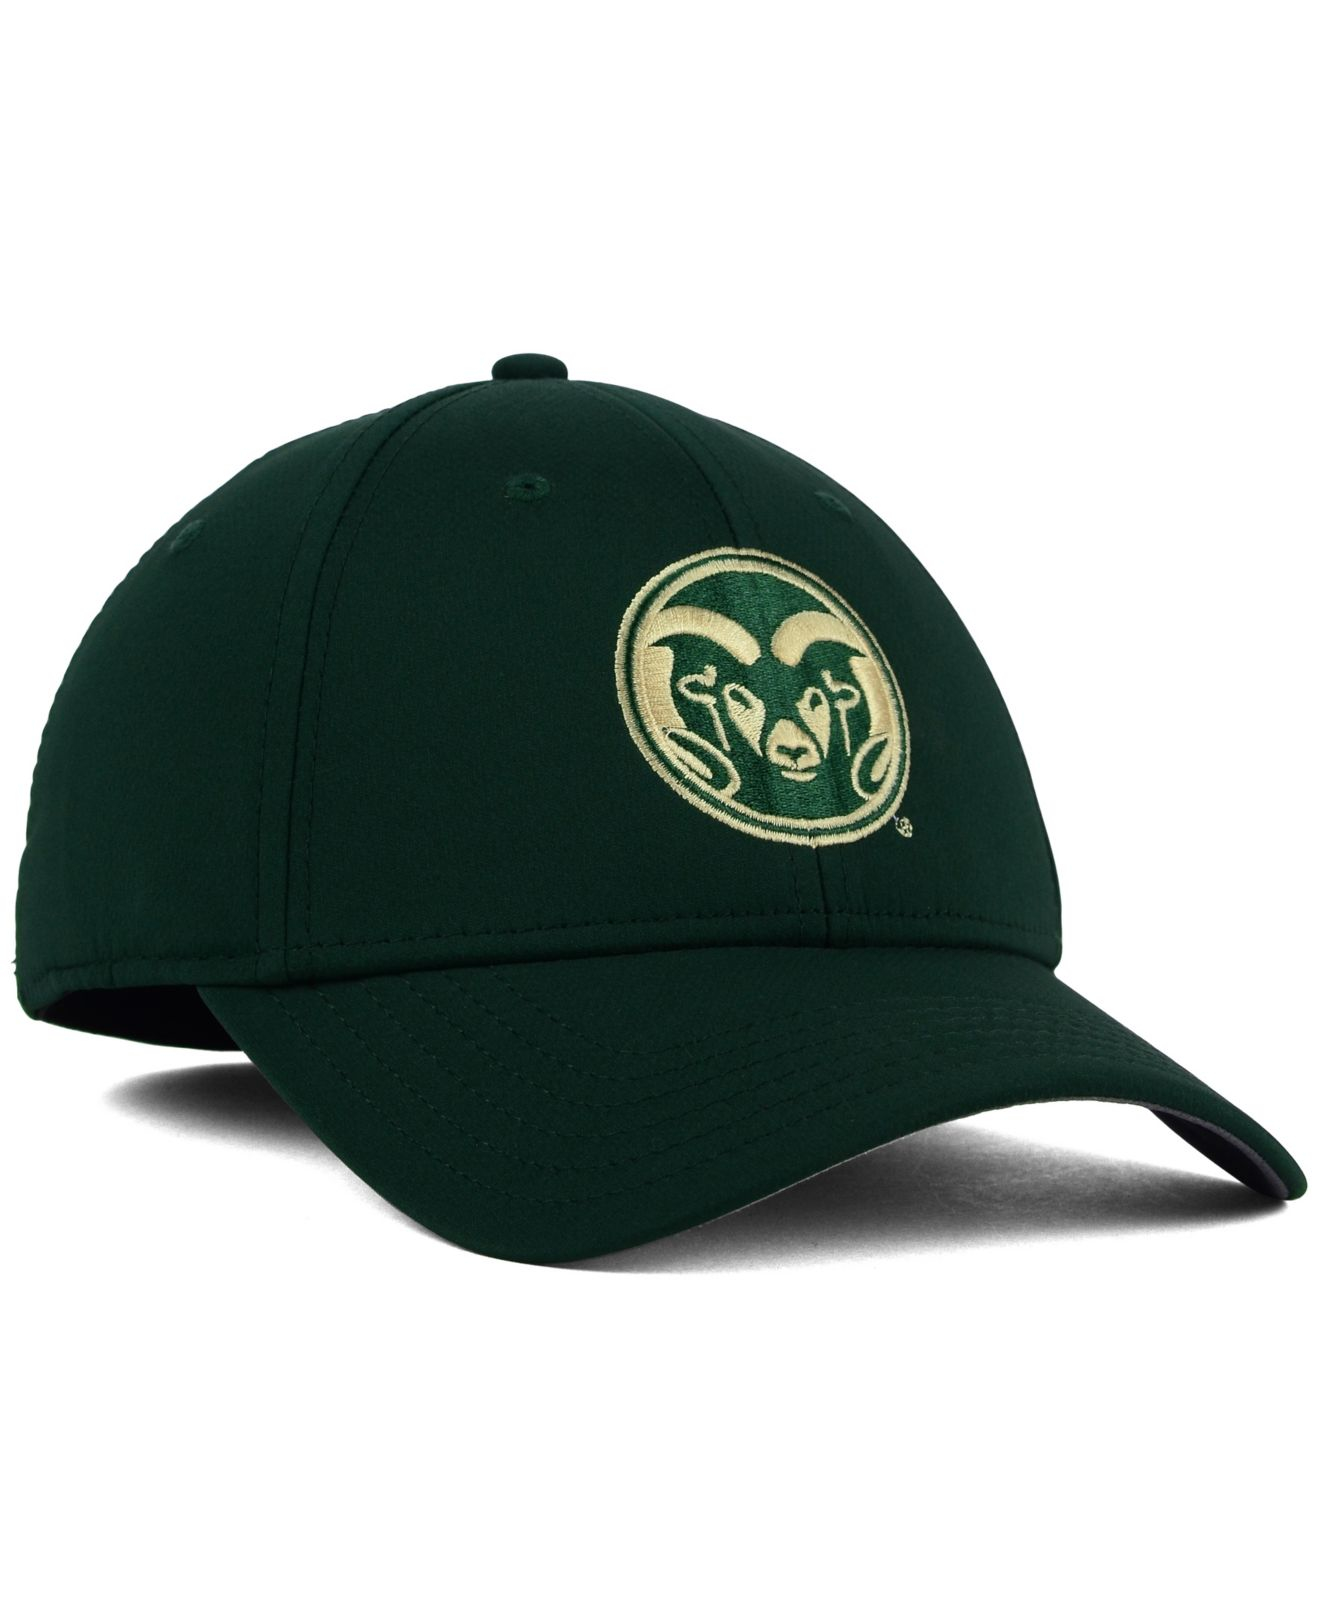 c18c09b790a Lyst - Under Armour Colorado State Rams Sideline Renegade Solid Cap ...